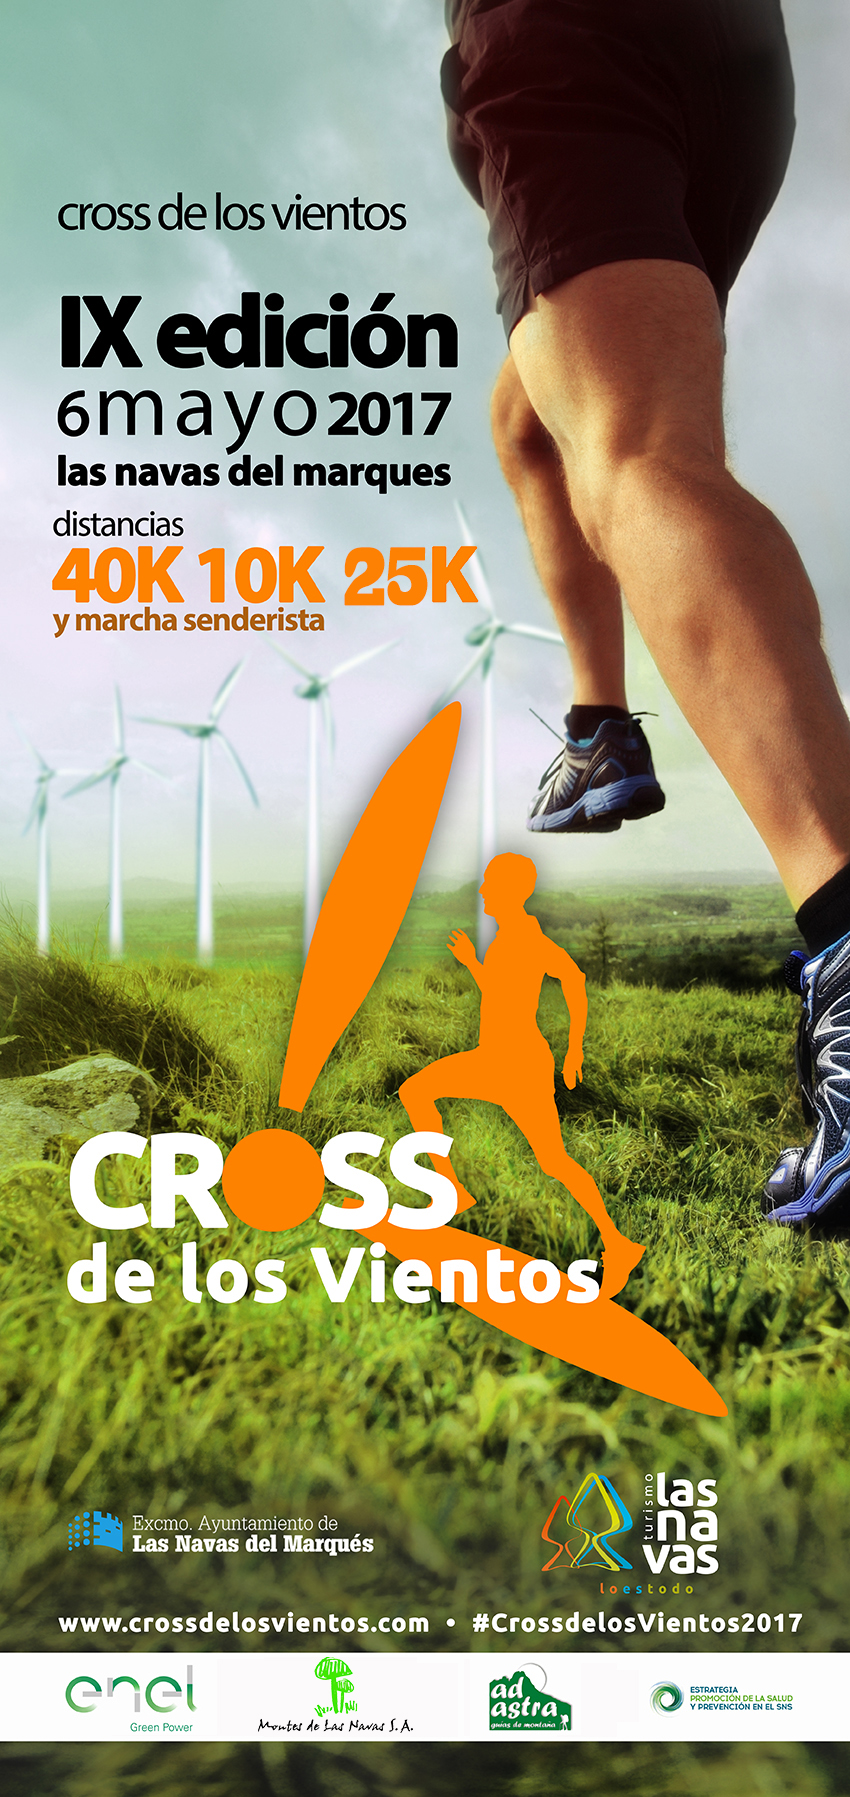 Cross de los Vientos